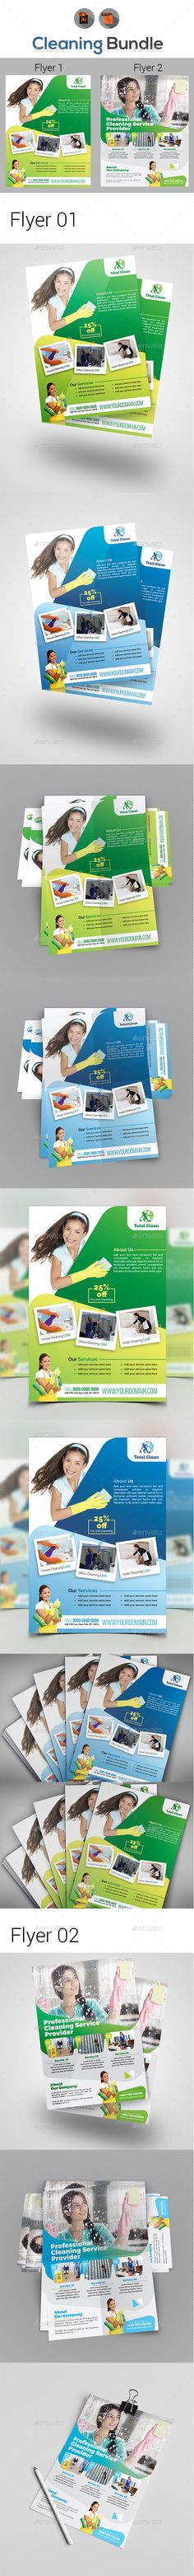 House Cleaning Services Flyer Template House Cleaning - house cleaning flyer